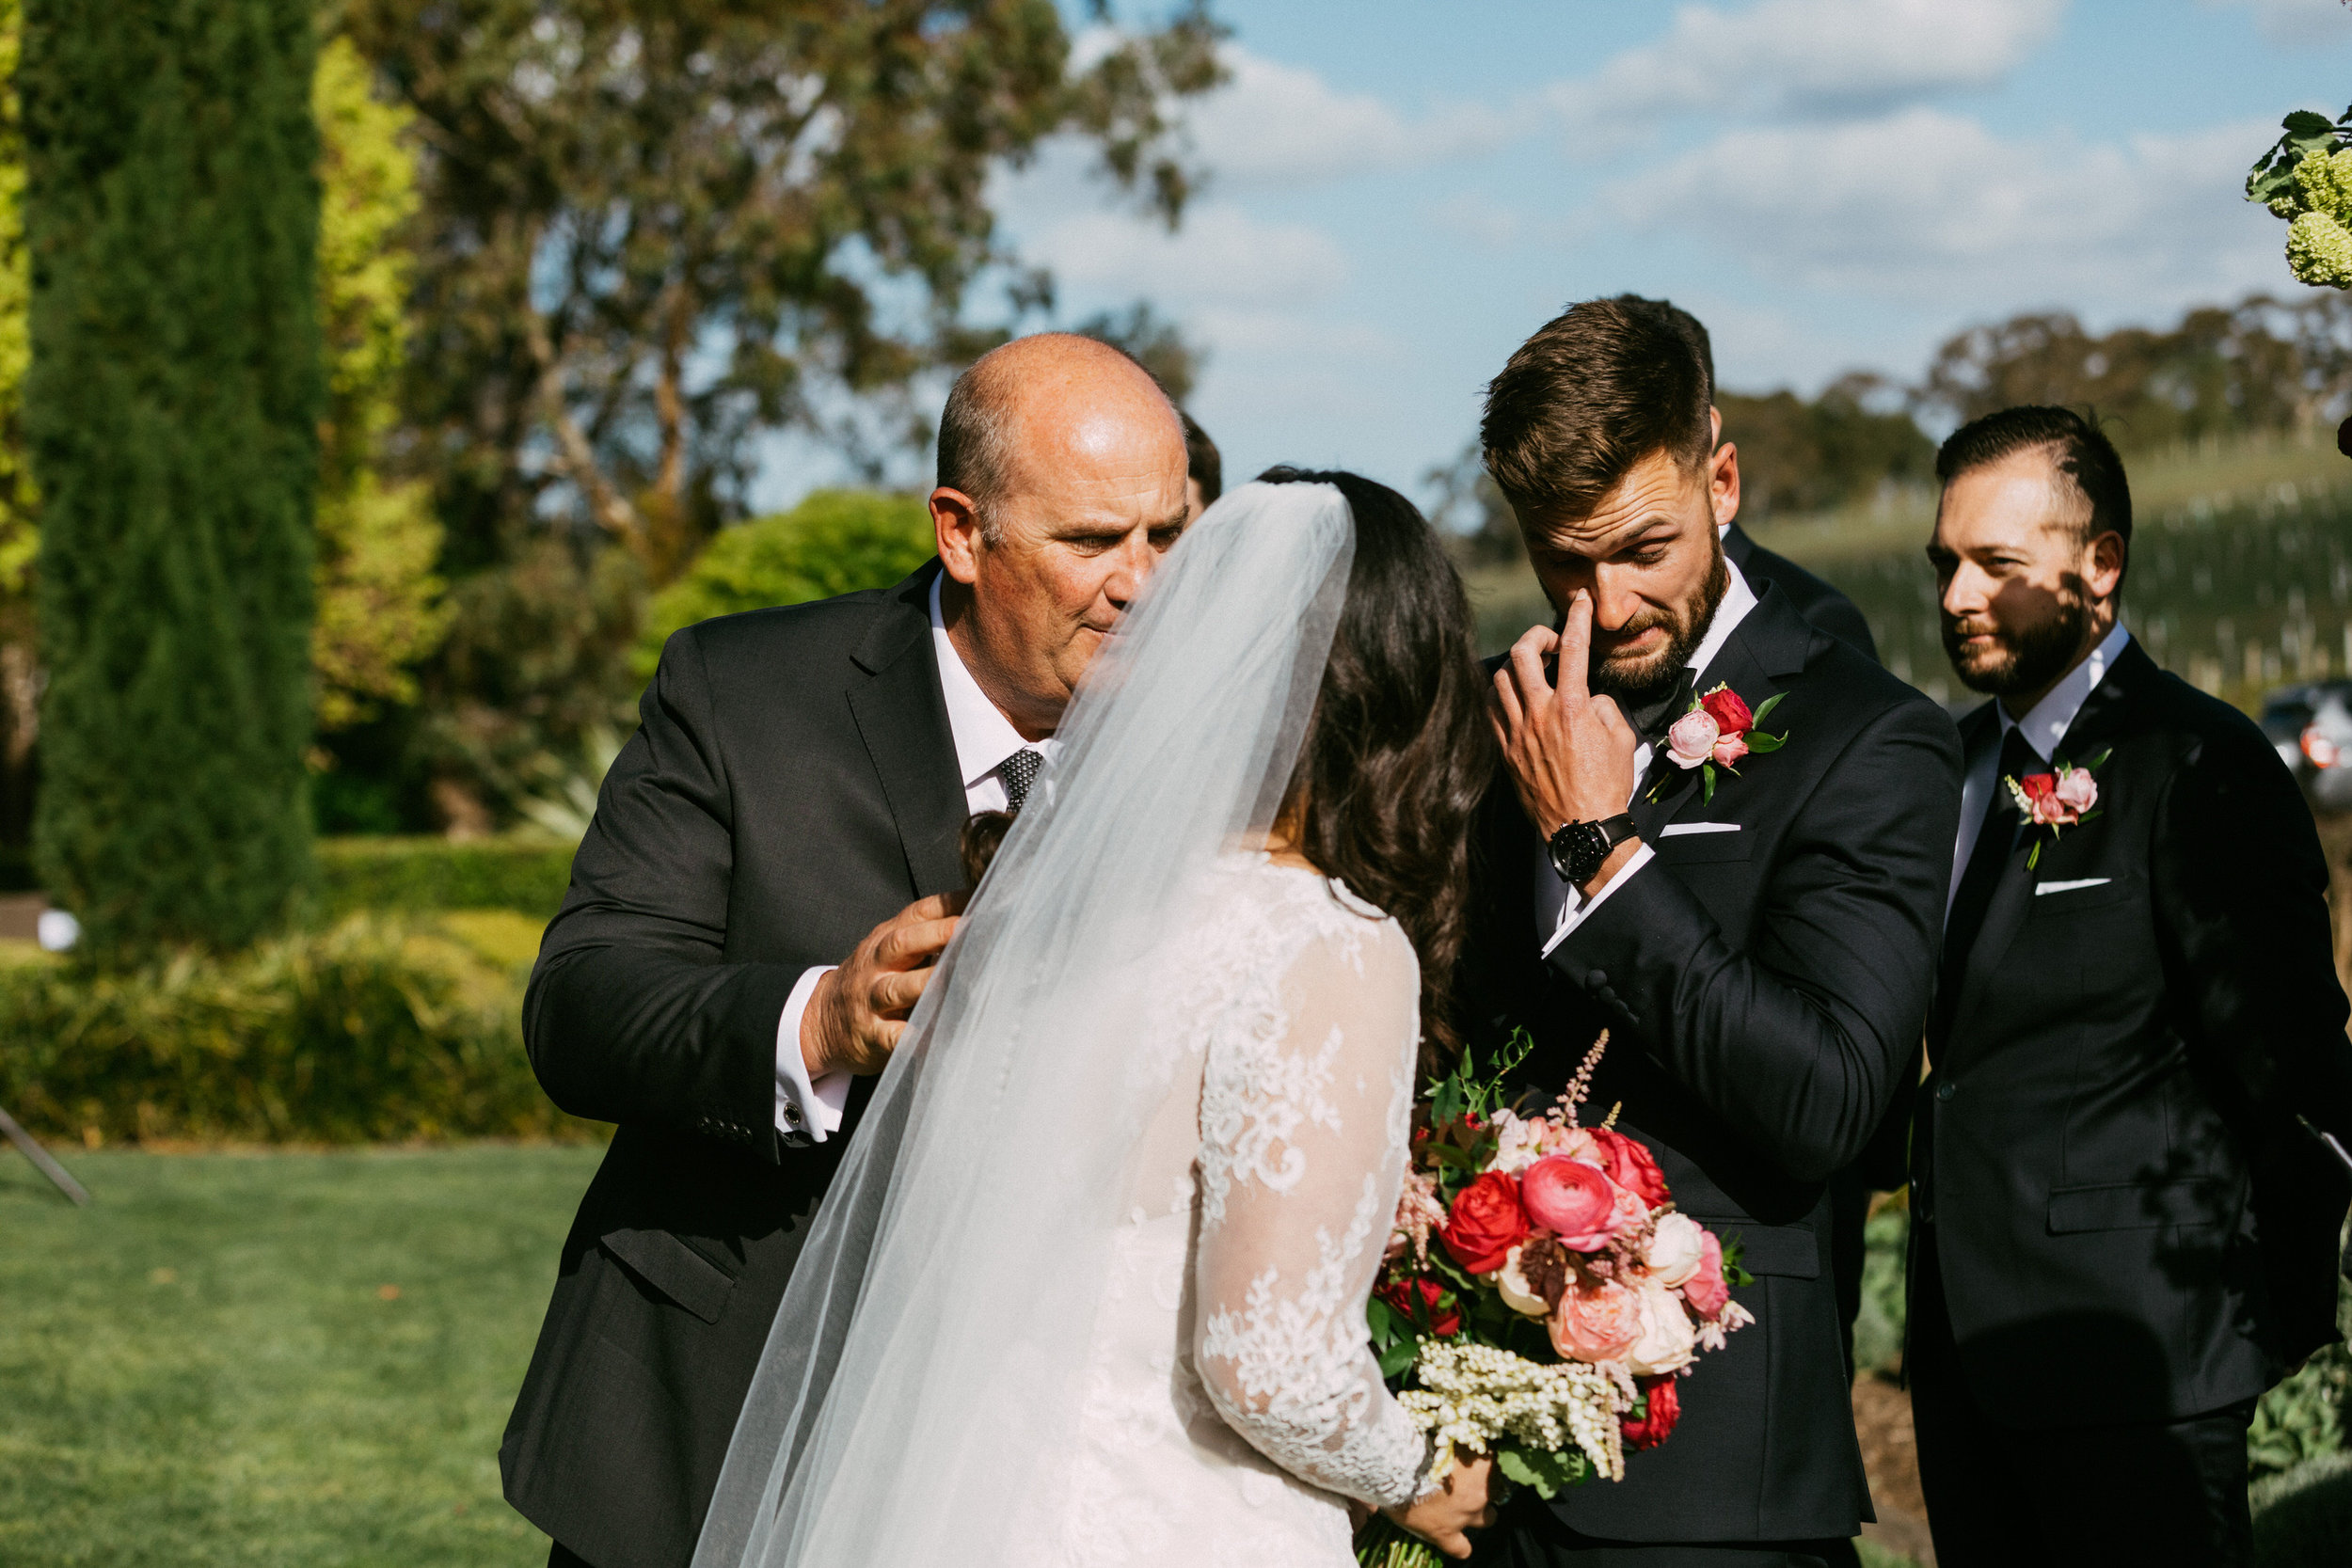 Goldings Winery Wedding SA 112.jpg